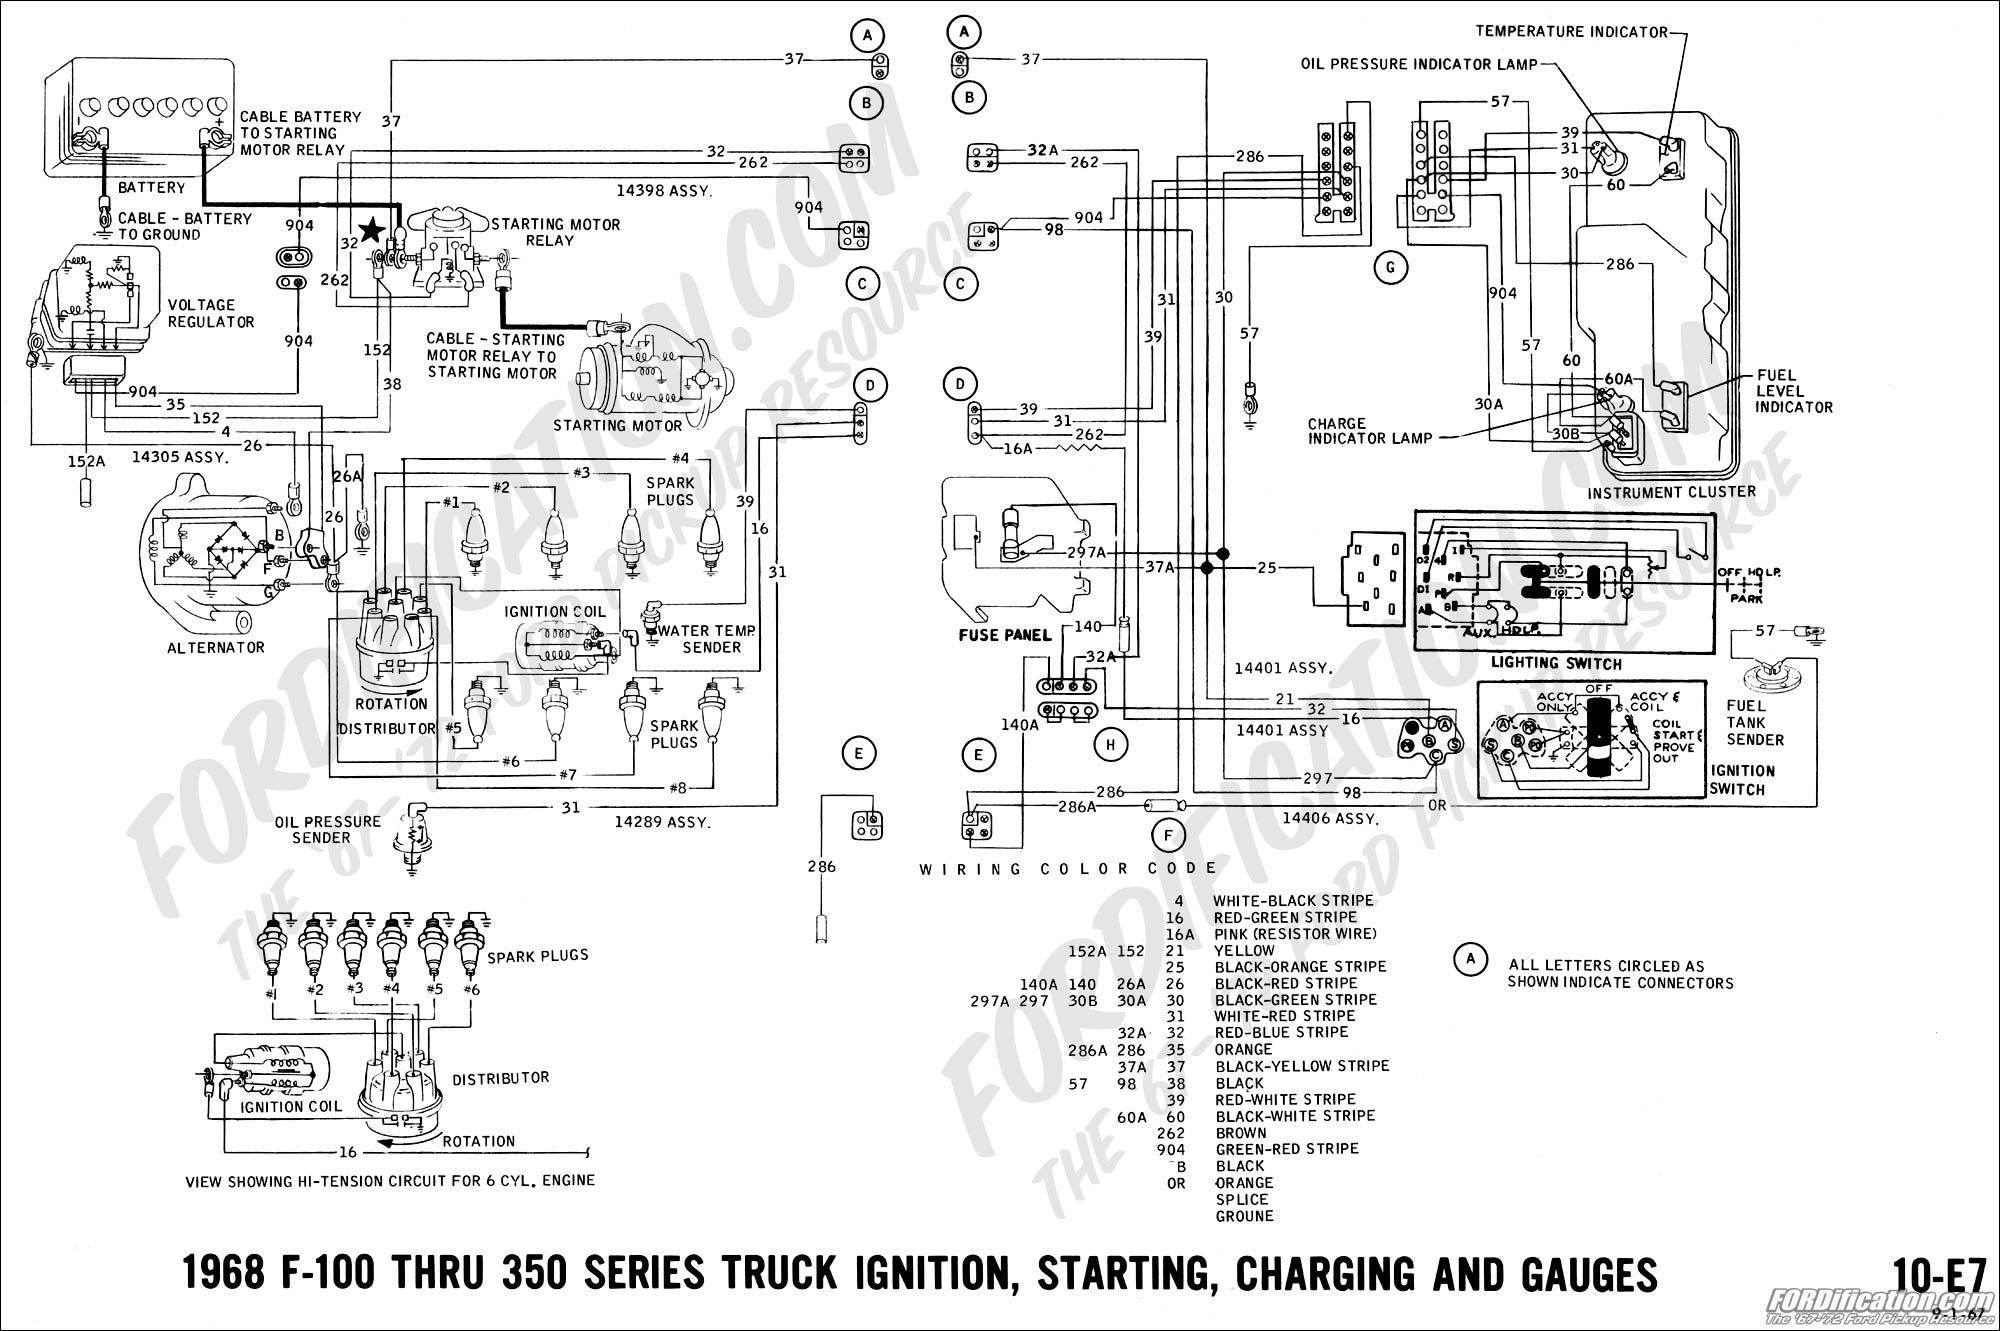 68 09 ford truck technical drawings and schematics section h wiring ford 302 distributor wiring diagram at honlapkeszites.co